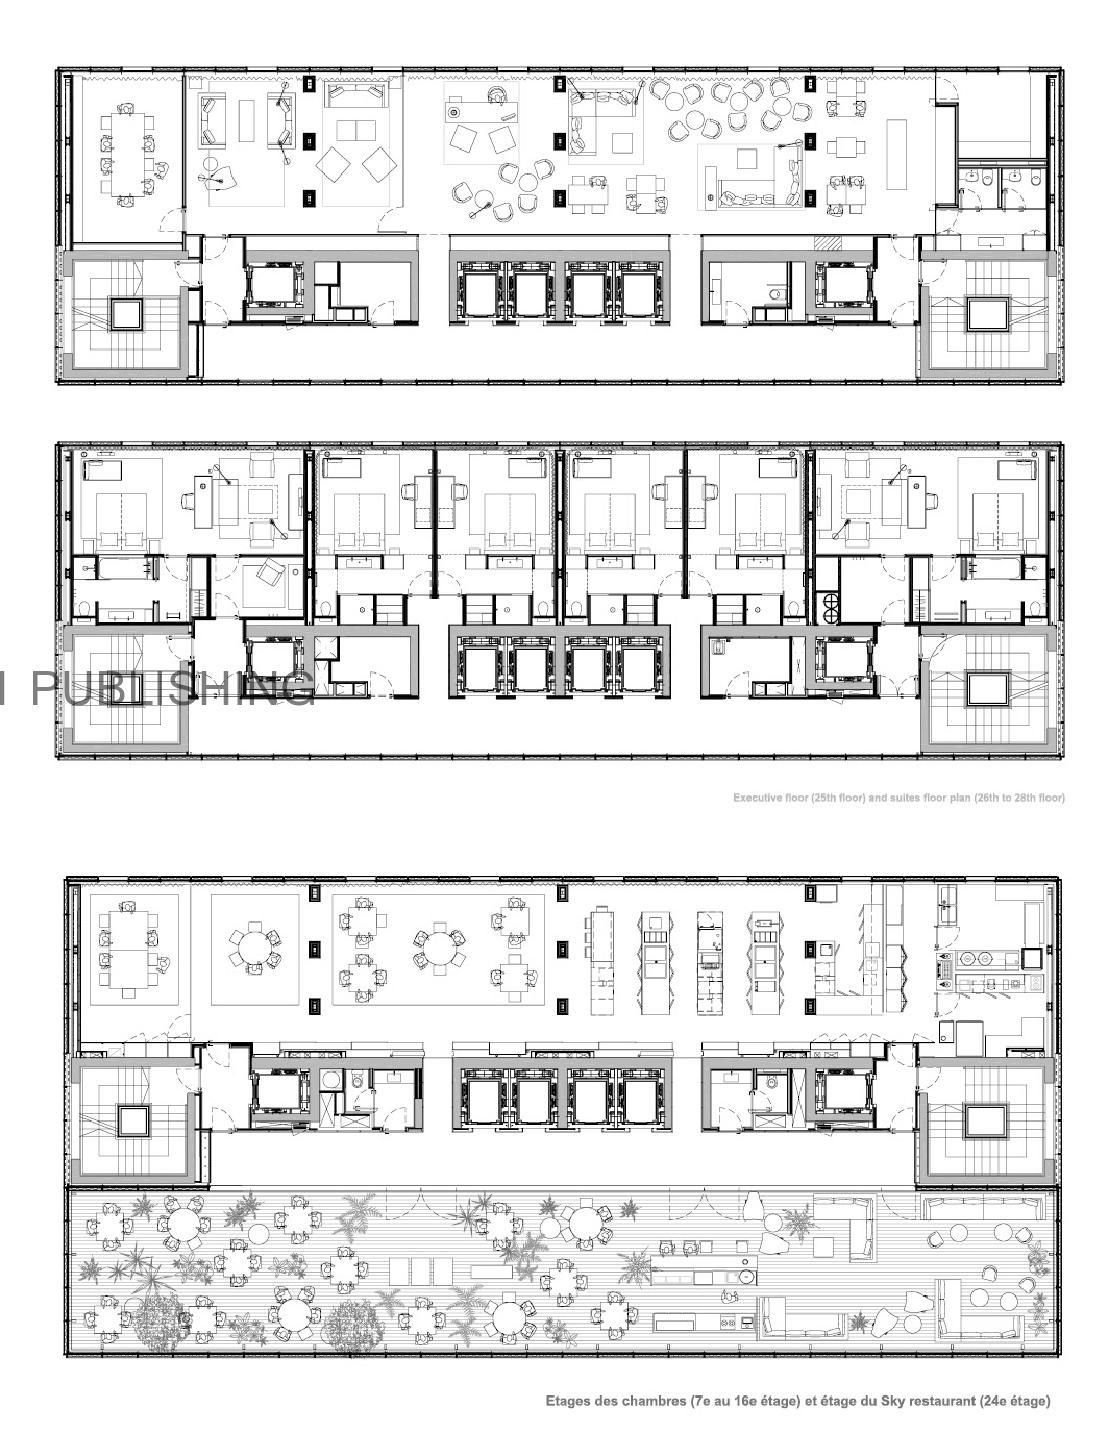 Hotel architecture hotel architecture architecture and for Hotel plan design